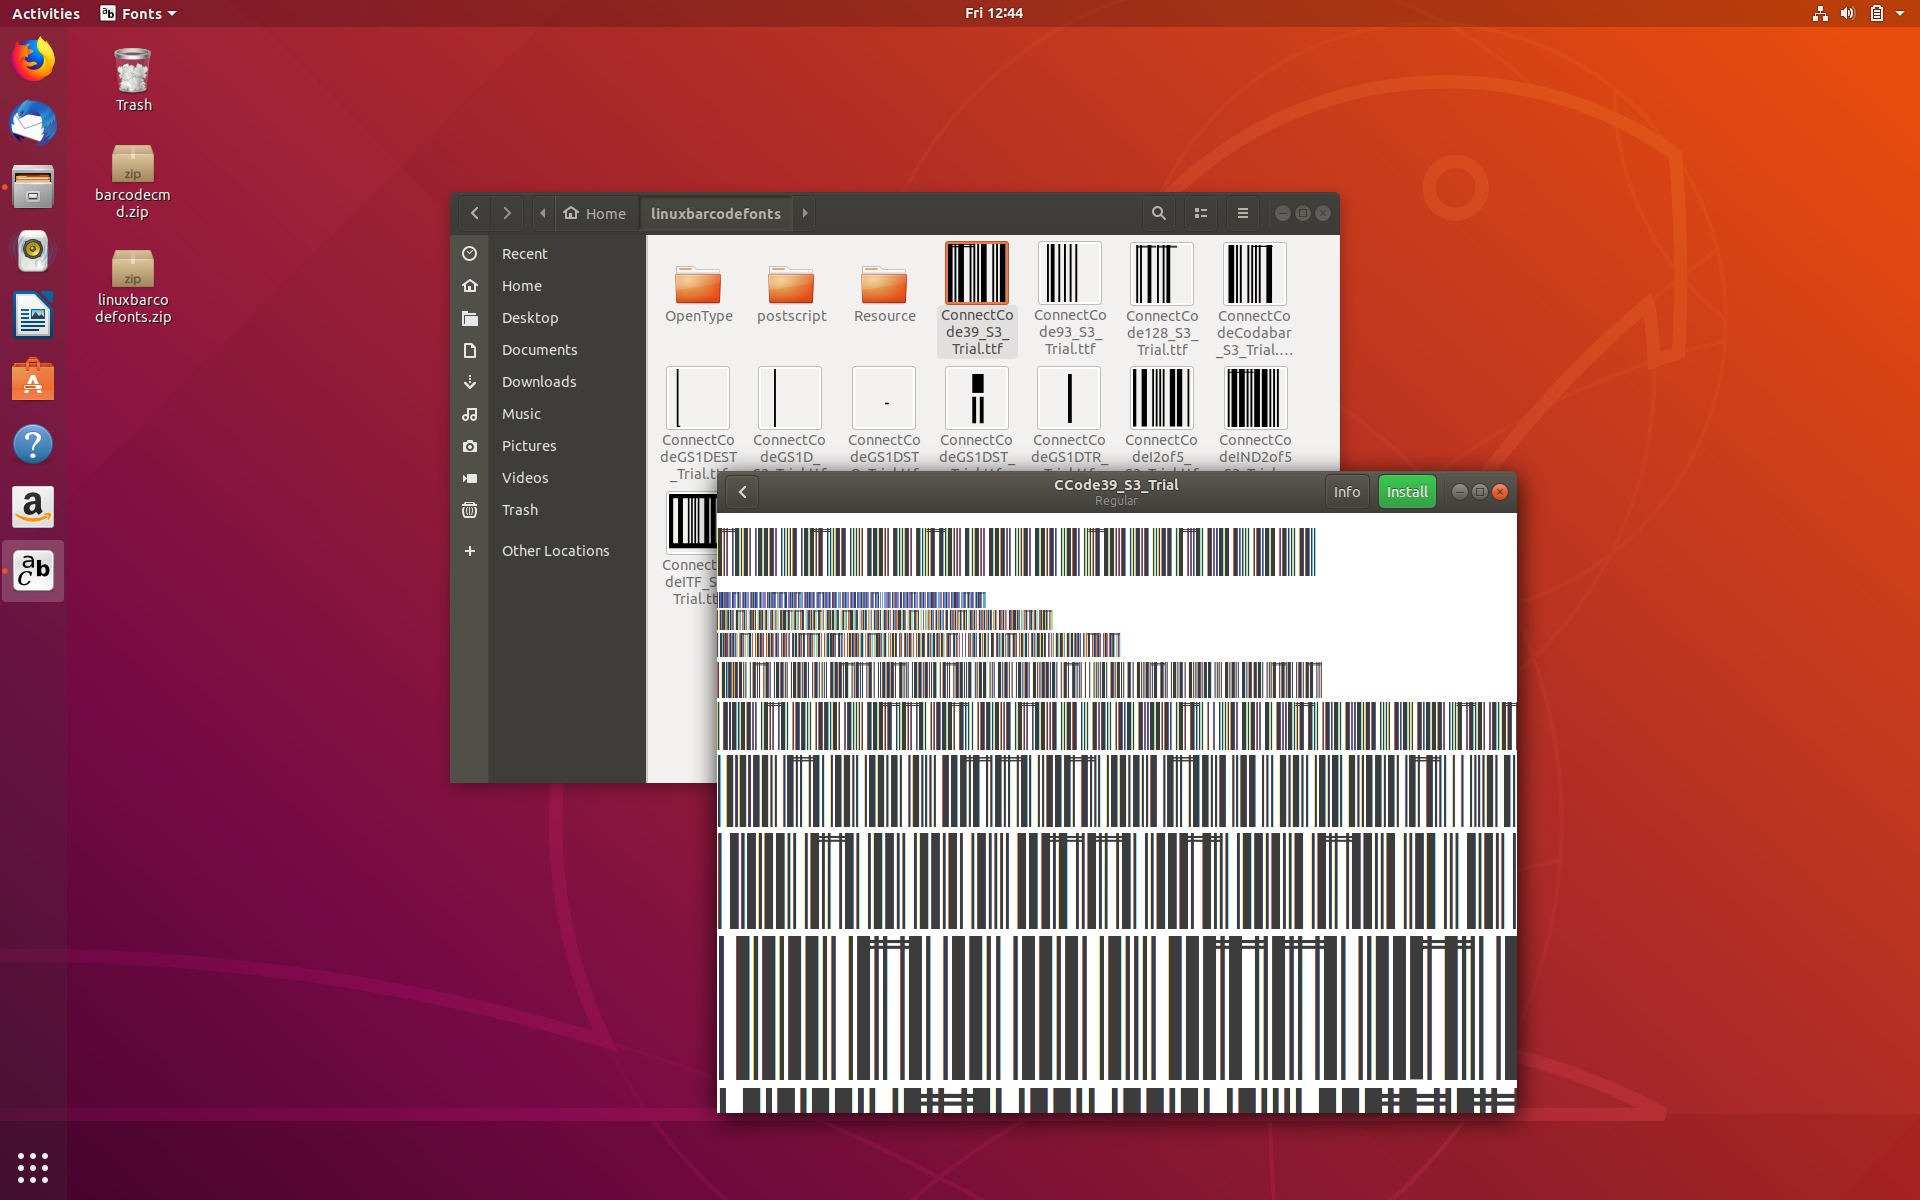 Installing the Barcode Fonts on Ubuntu Linux